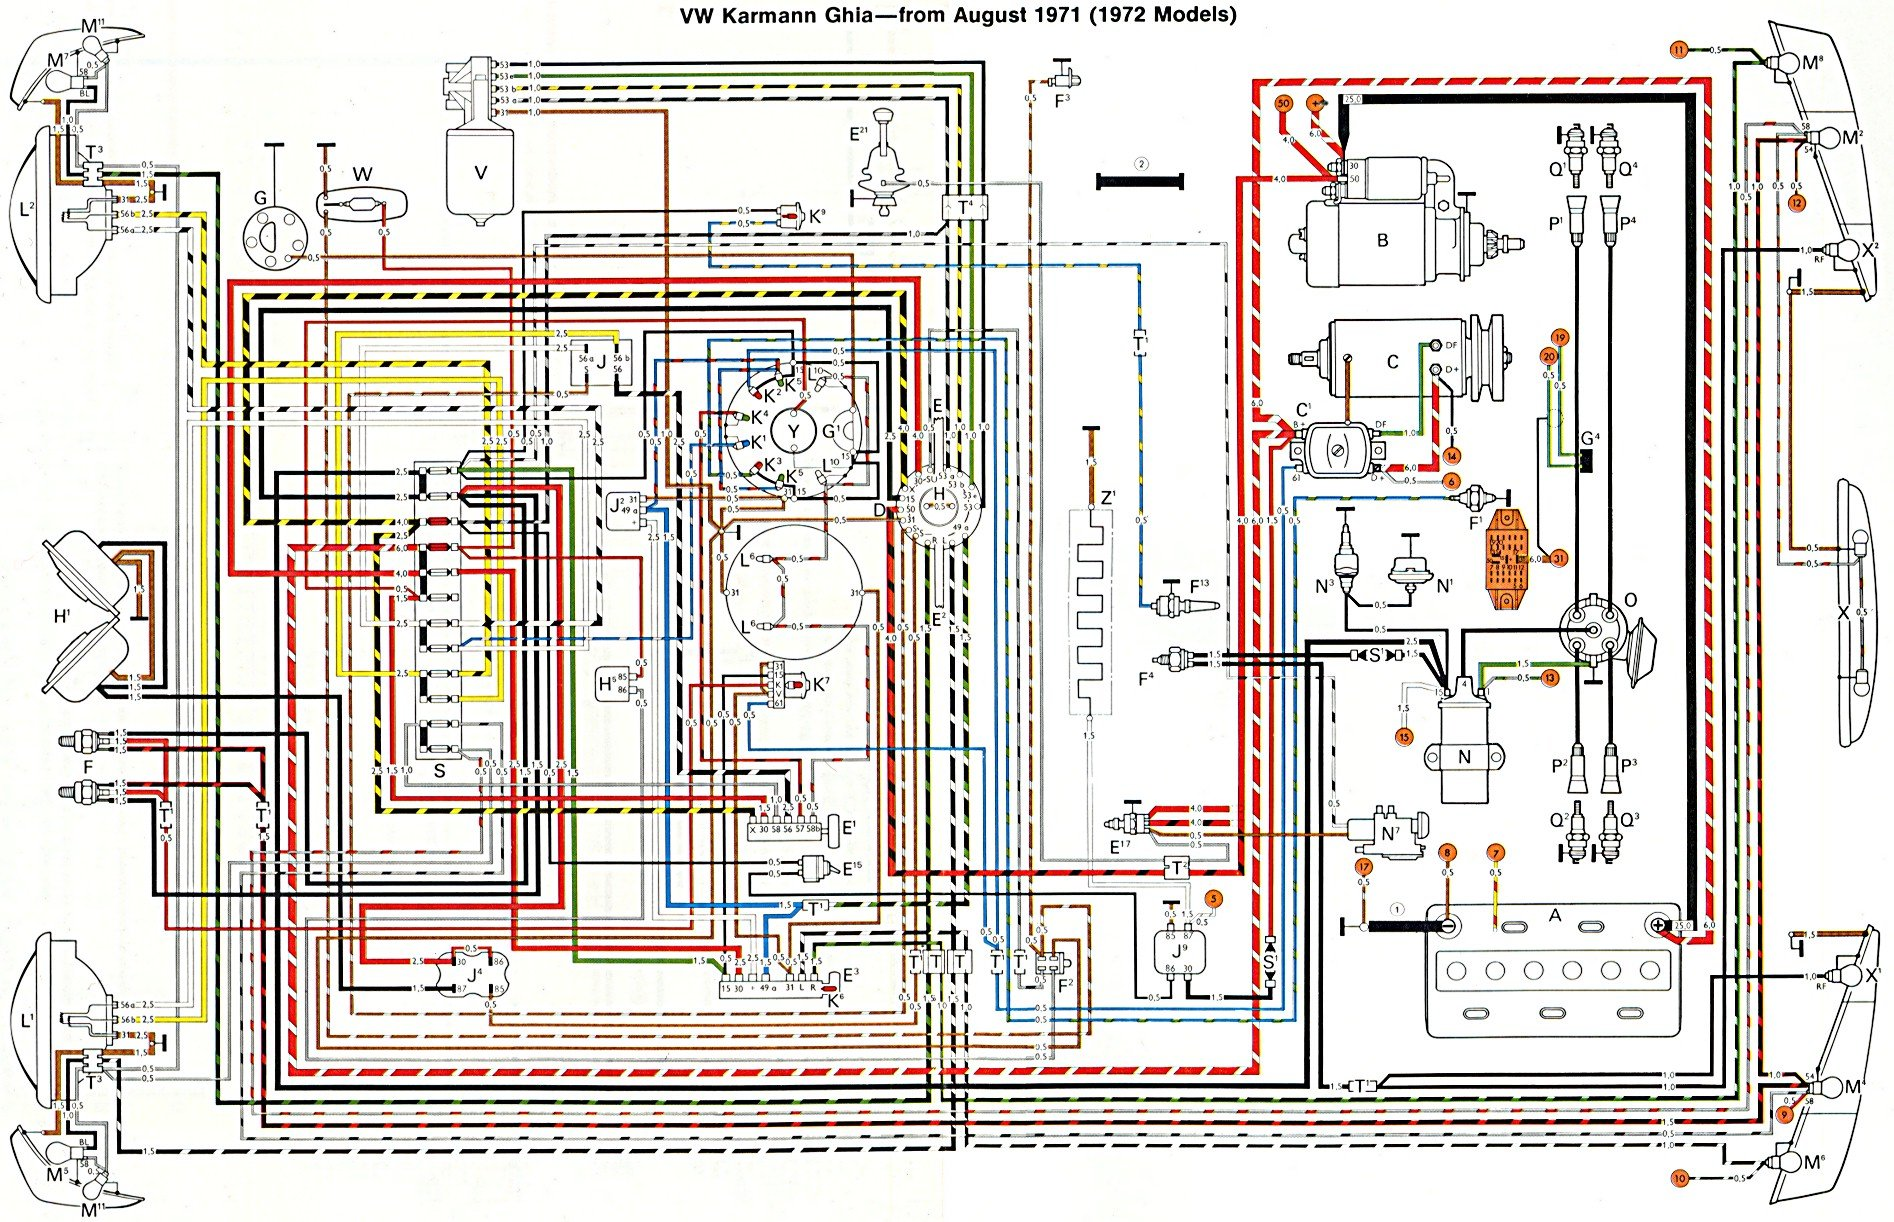 DIAGRAM] 67 Vw Wiring Diagram FULL Version HD Quality Wiring Diagram -  BILLSAUTOCARE.JOURNALDUNTHESARD.FRbillsautocare.journaldunthesard.fr